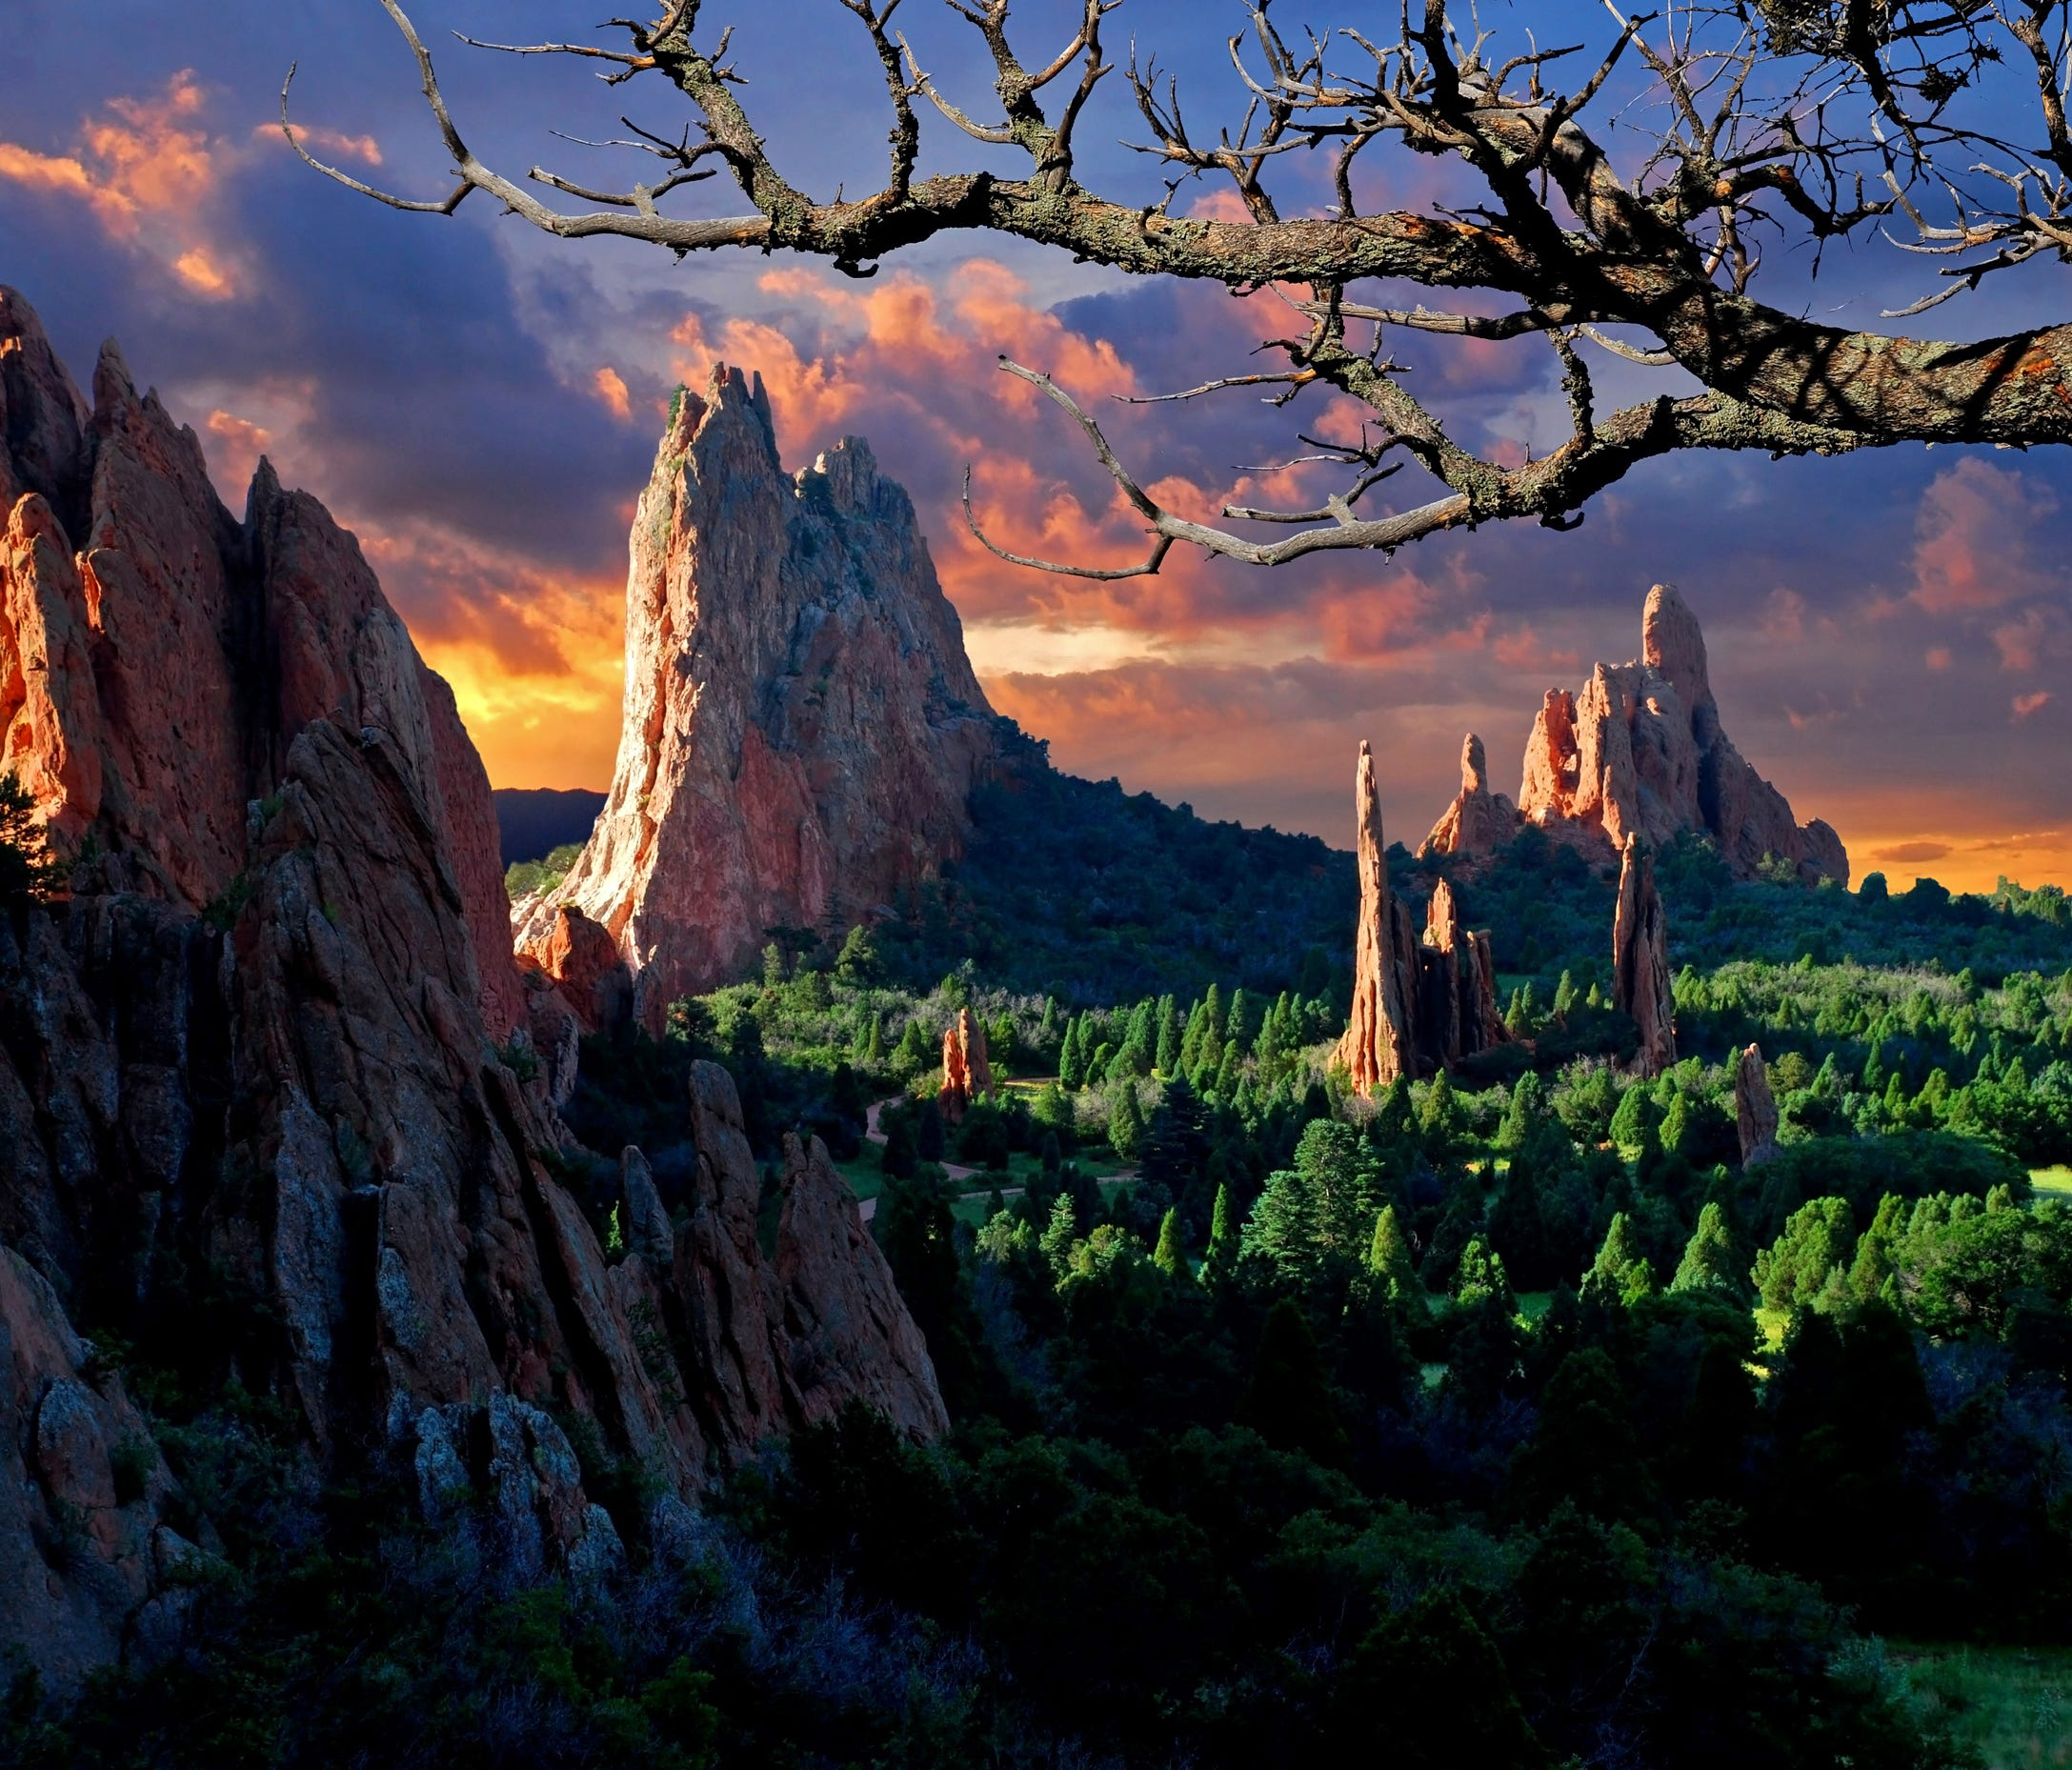 Some of the ancient, twisted juniper trees found within Garden of the Gods are more than 1,000 years old.